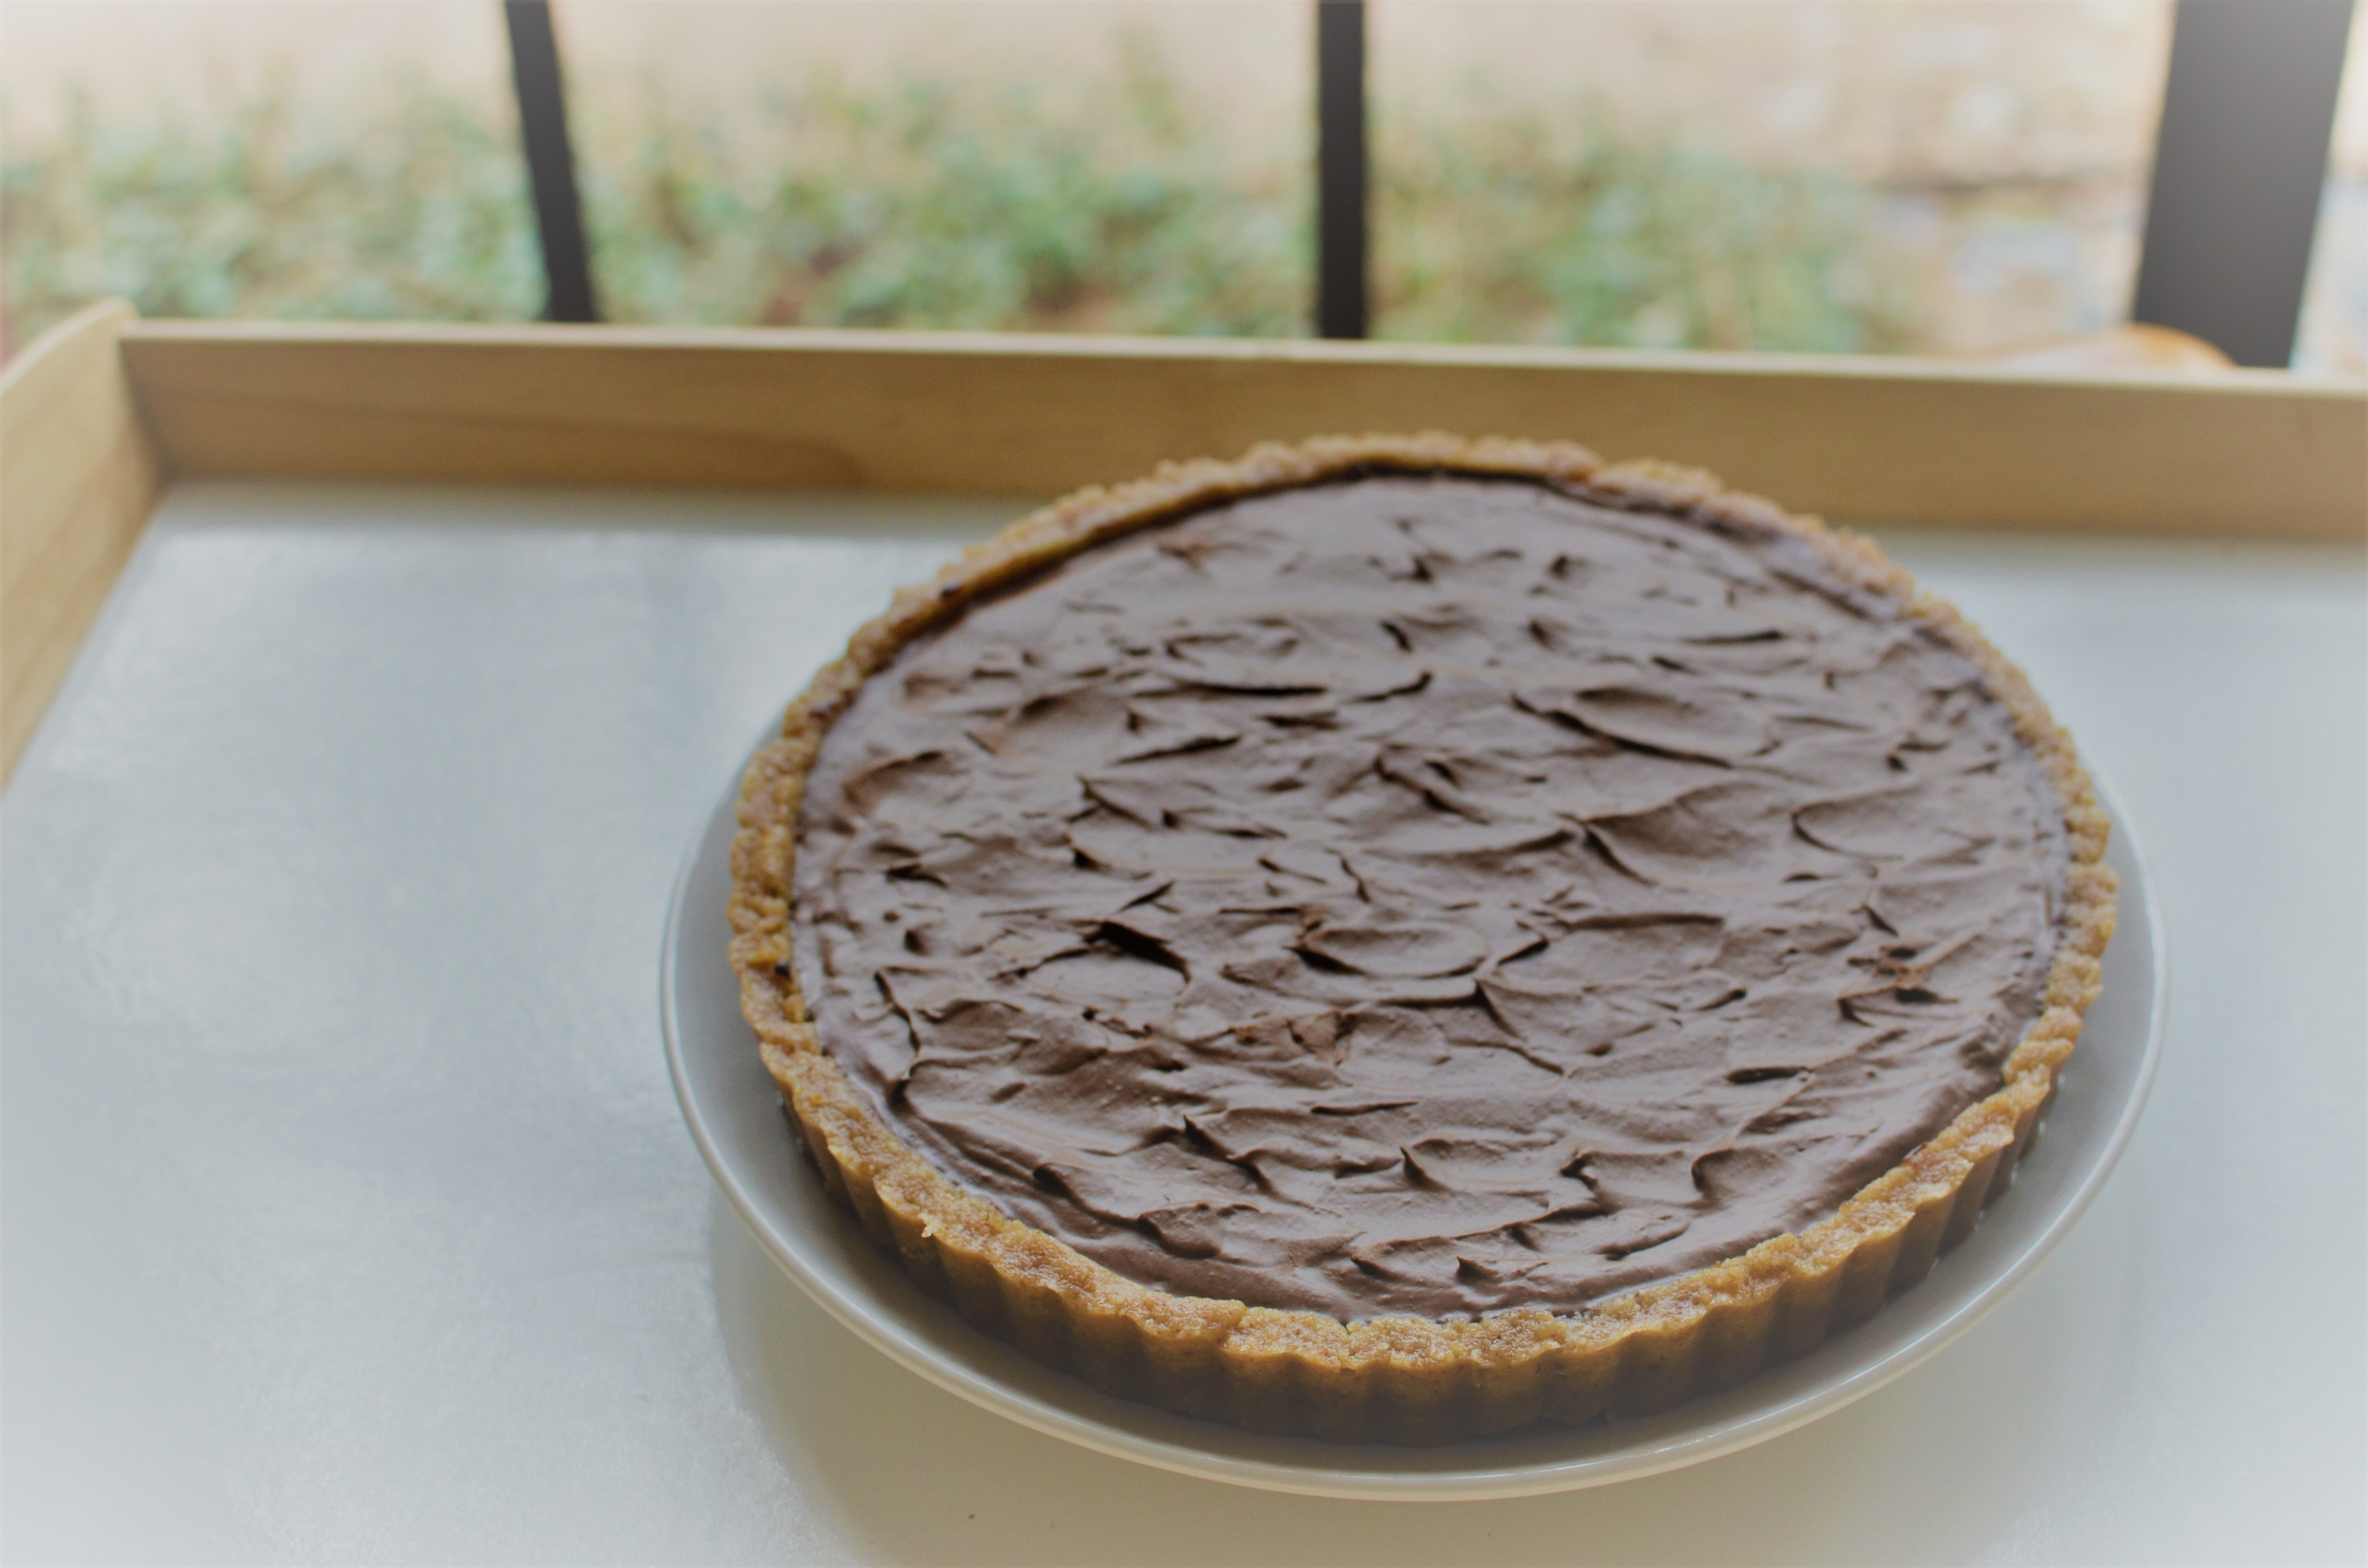 Recipe: Decadent Chocolate Tart (with an orange-chocolate option)